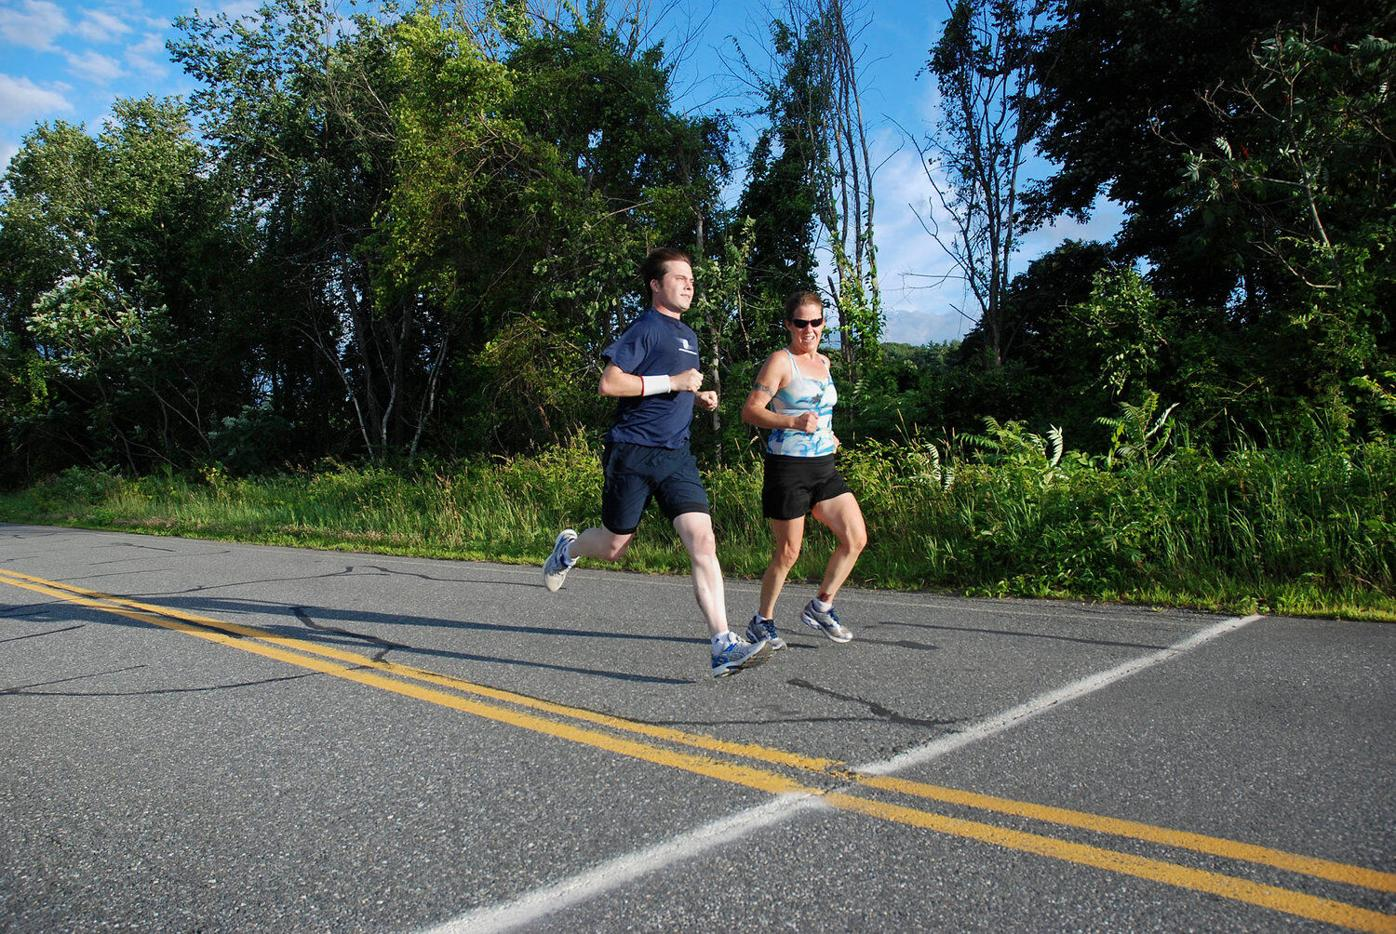 Amby Burfoot: Running is a gift for life